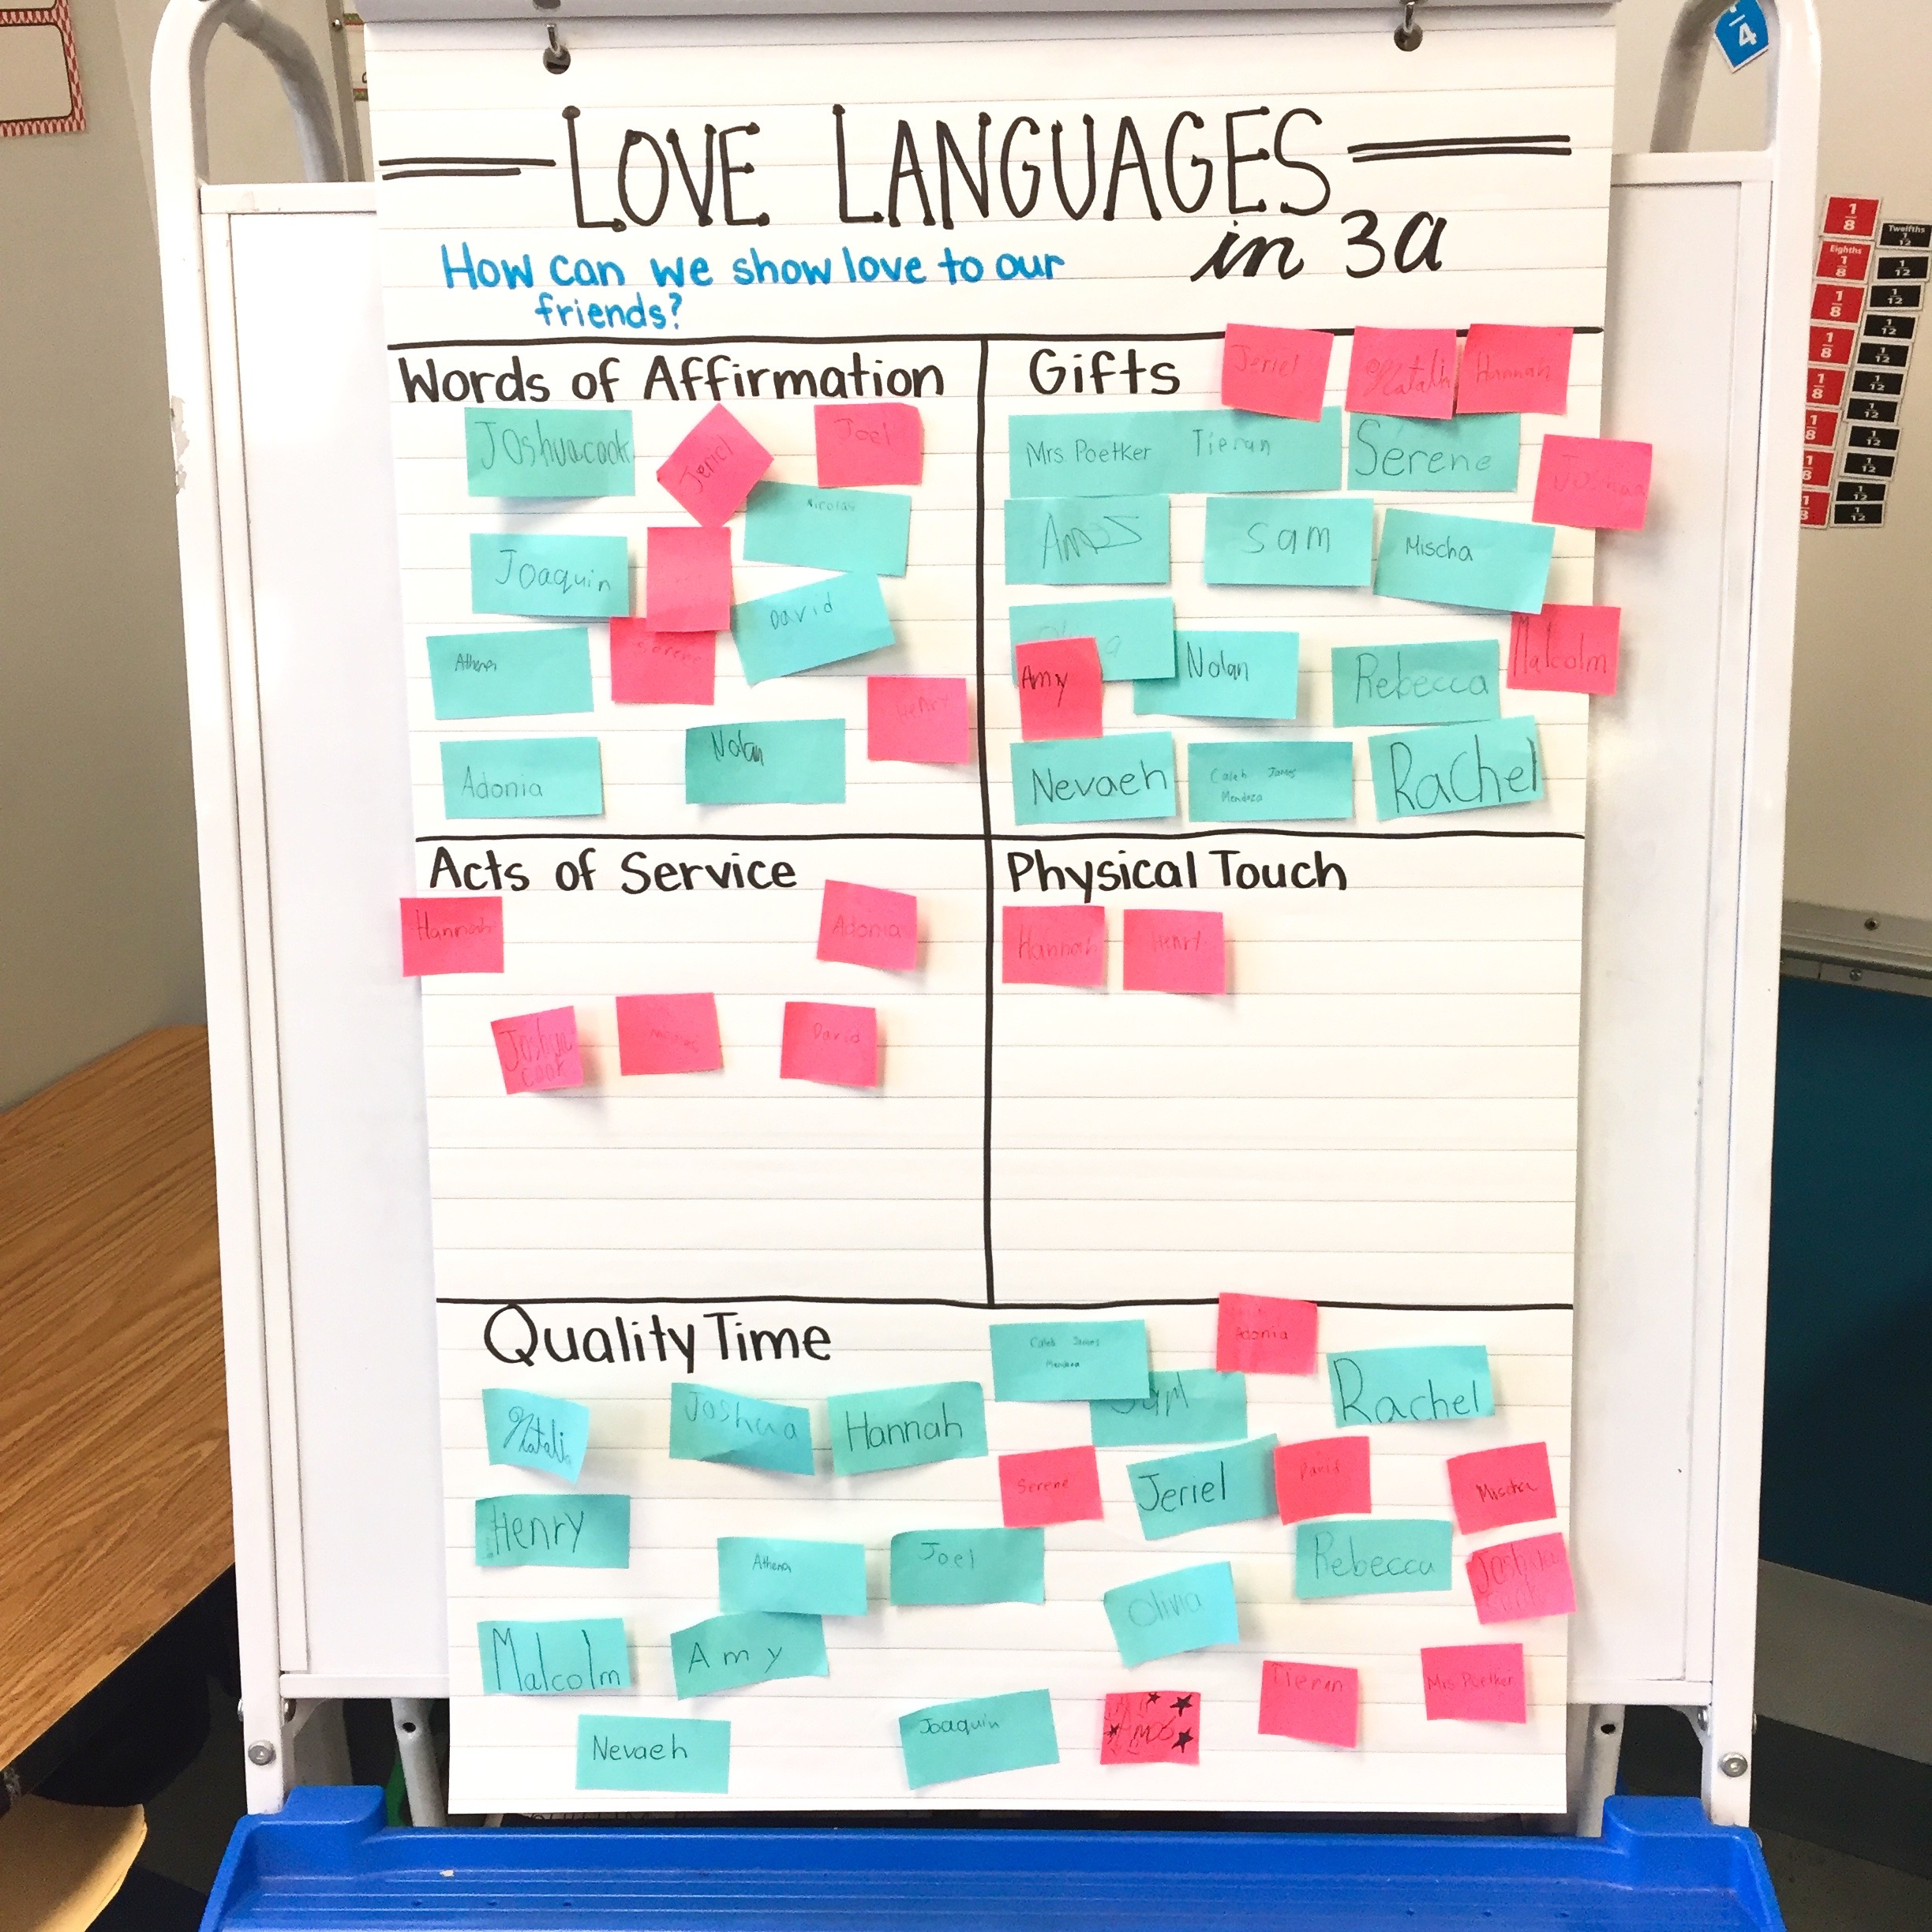 It was so interesting to see how my students like to receive love – it was definitely different than I would have expected.